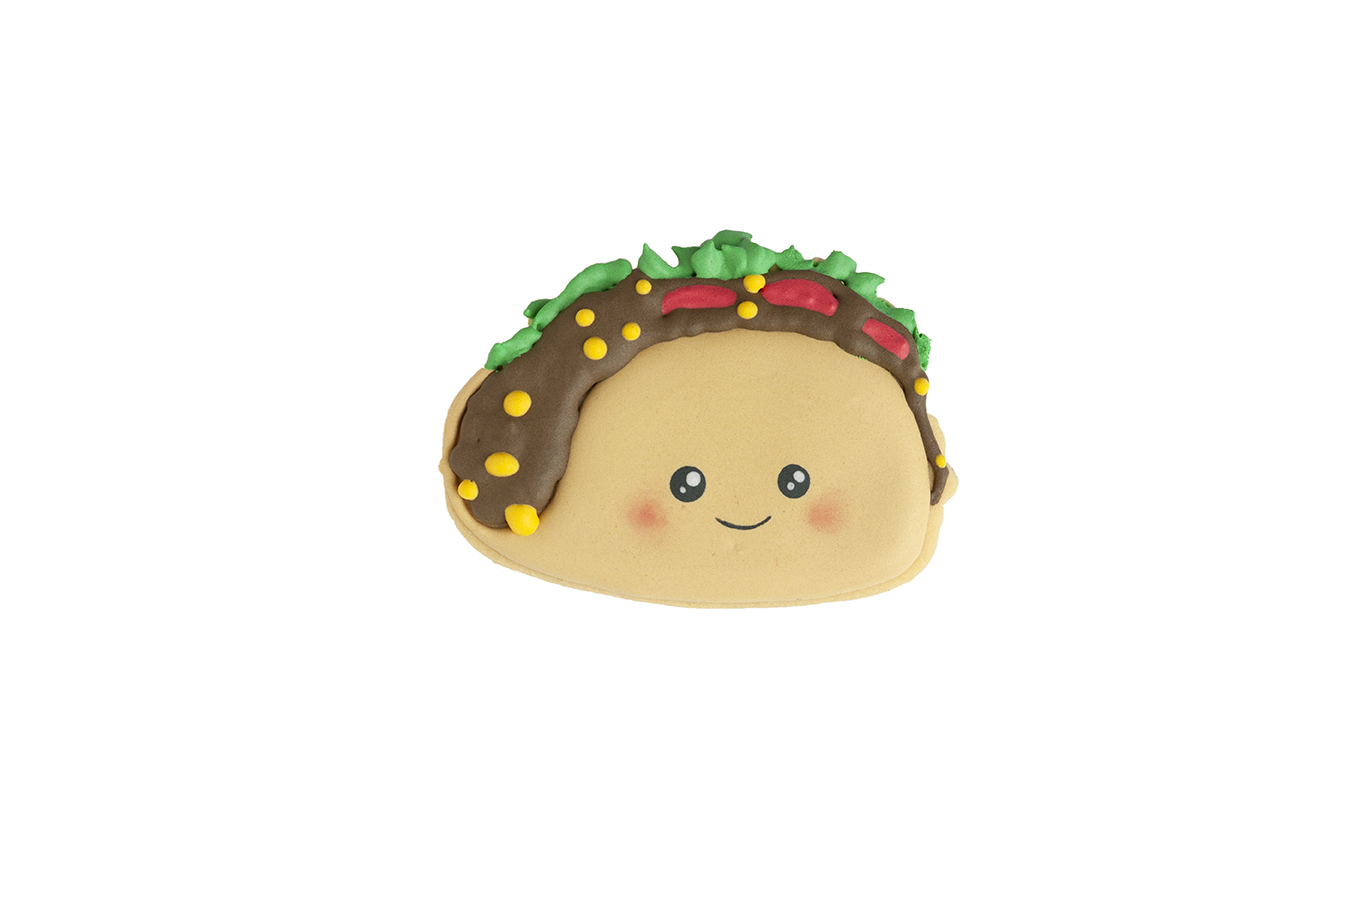 181126 - Taco About it .jpg